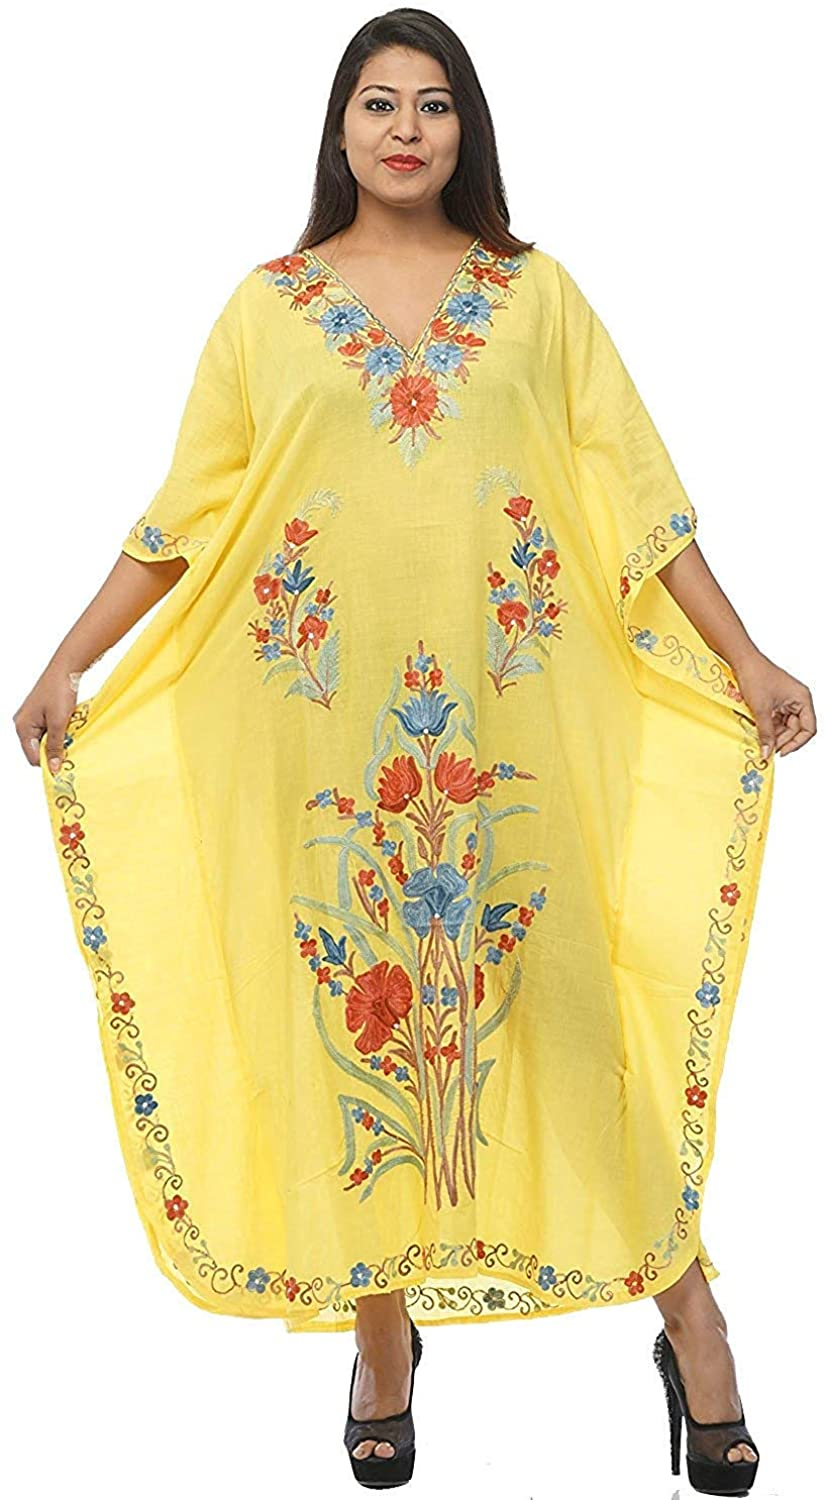 Odishabazaar Long Kashmiri Kaftan with Ari Hand-Embroidered Flowers and Paisleys